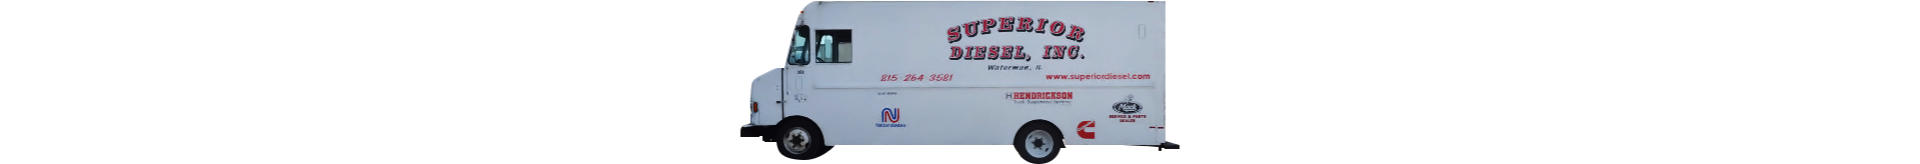 The Superior Diesel Mobile Services Truck